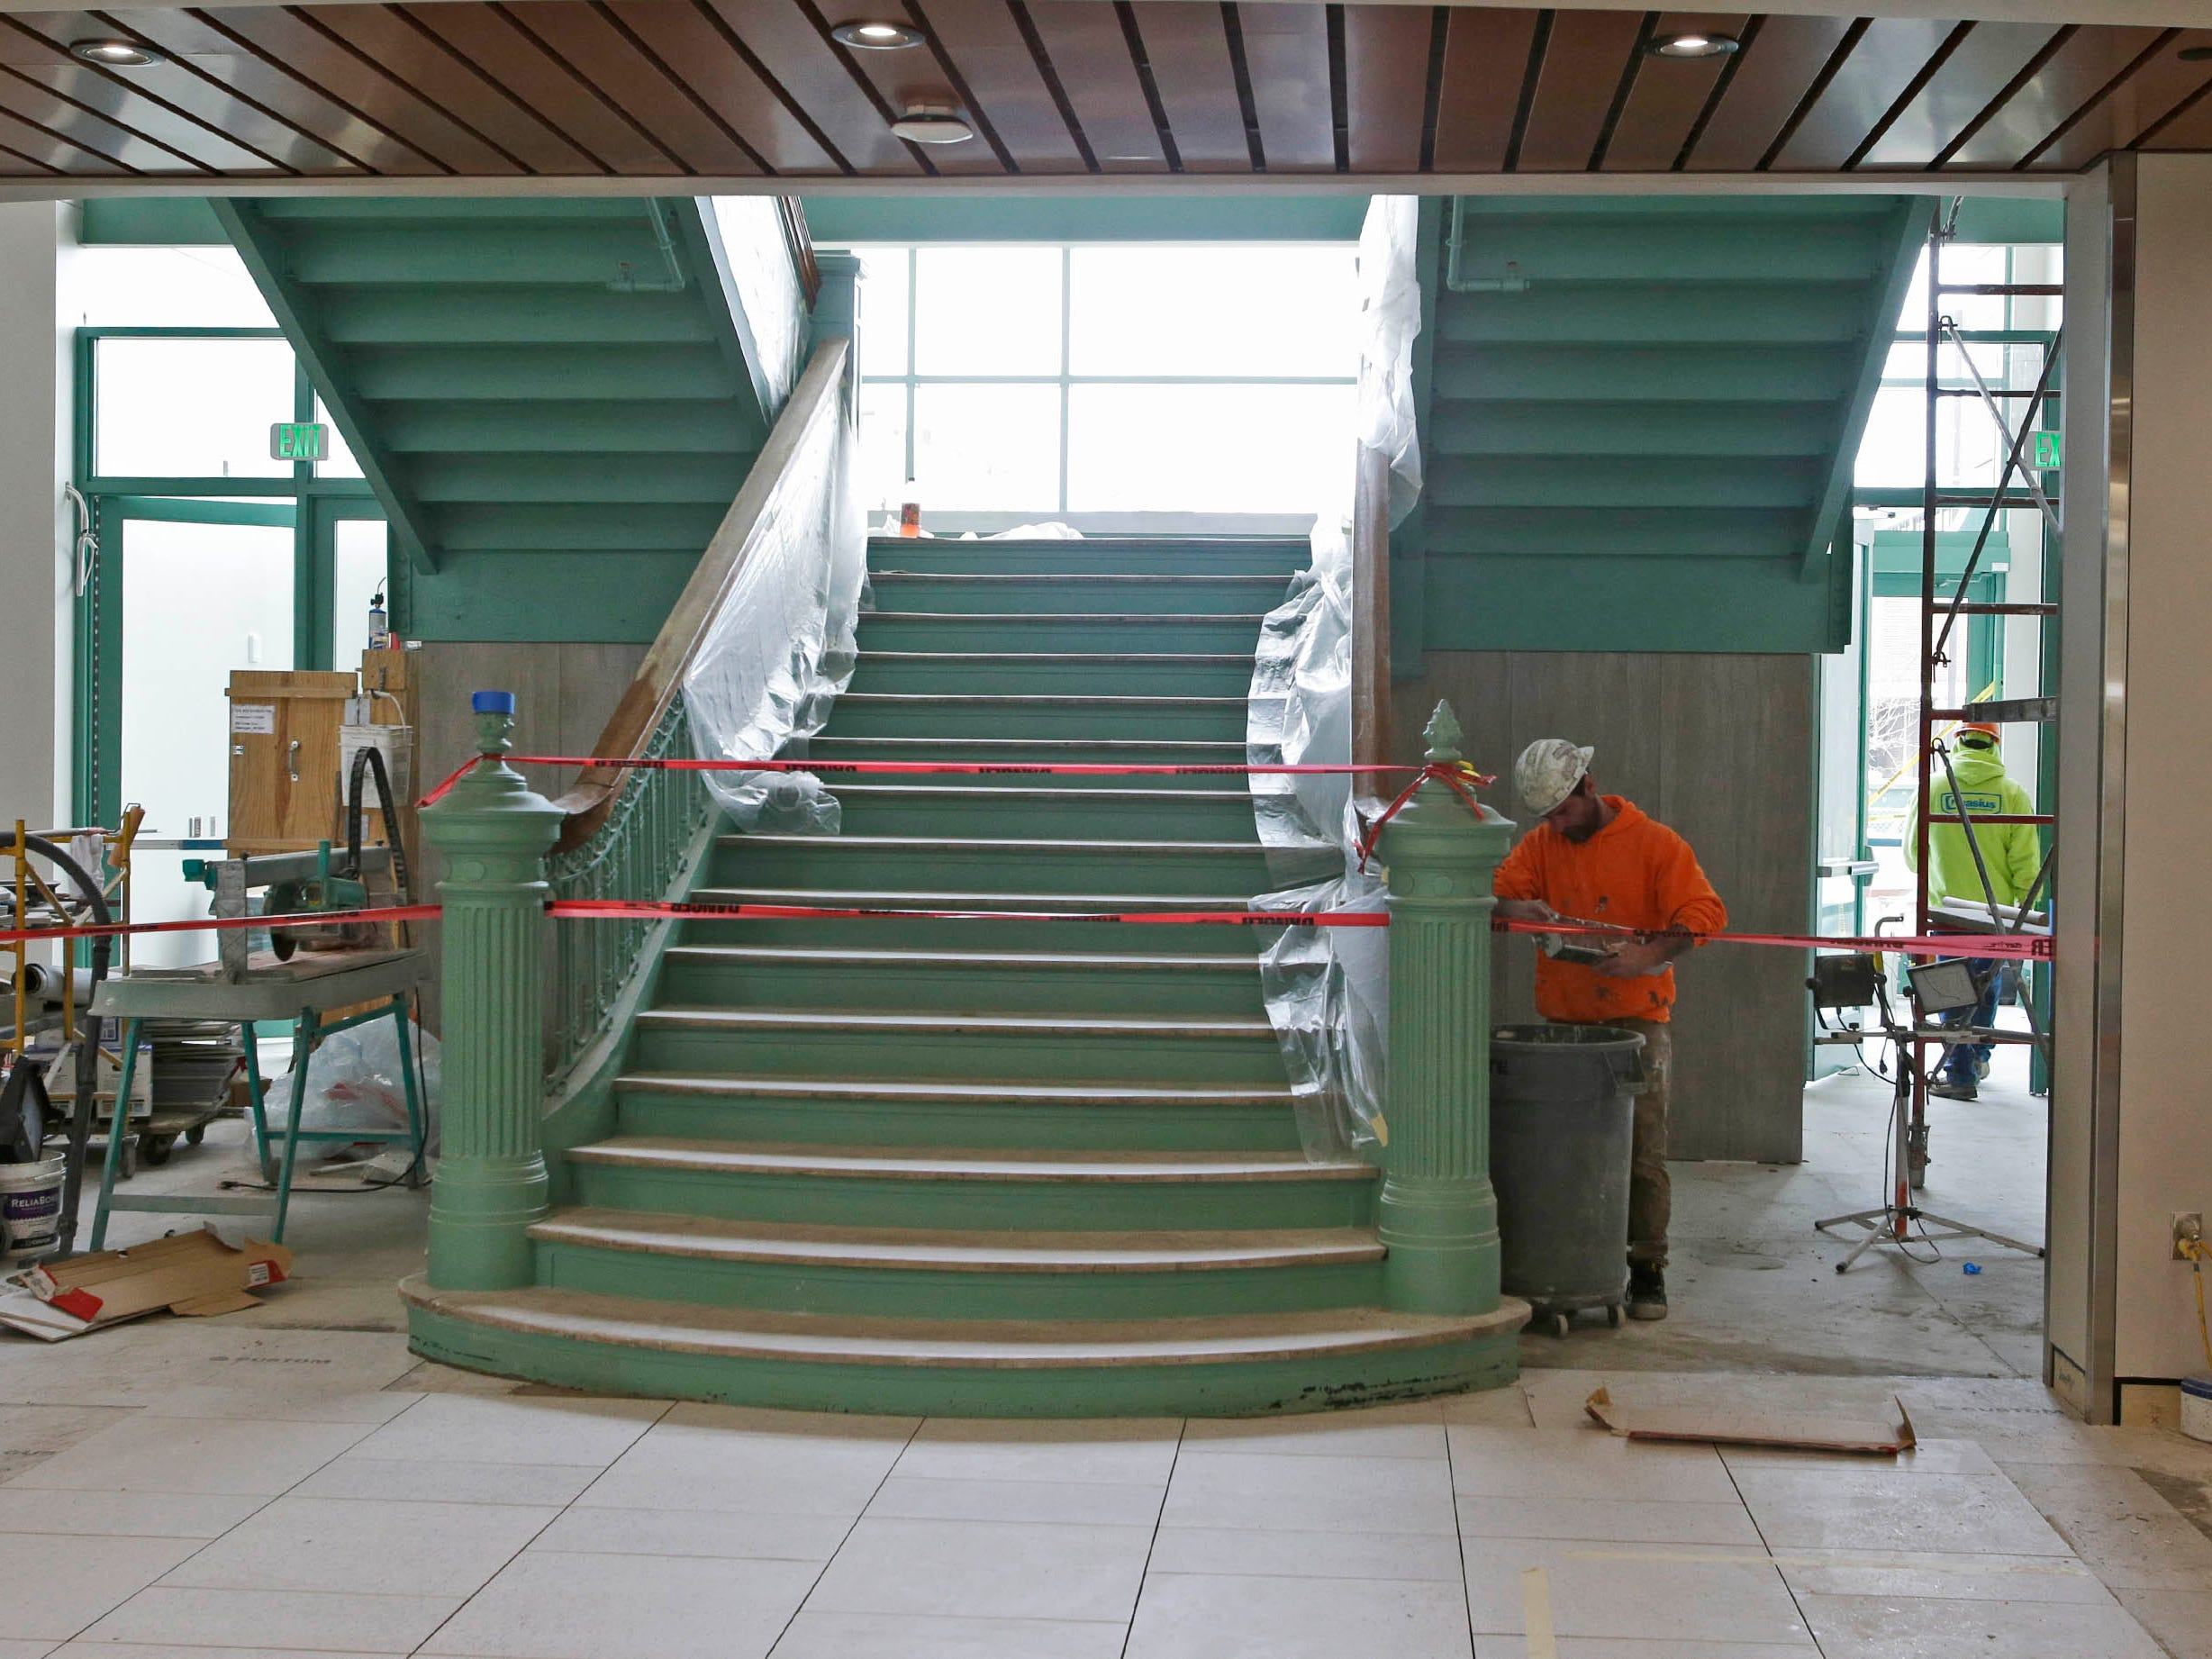 The stairway area at Sheboygan City Hall as seen, Tuesday, May 7, 2019, in Sheboygan, Wis.